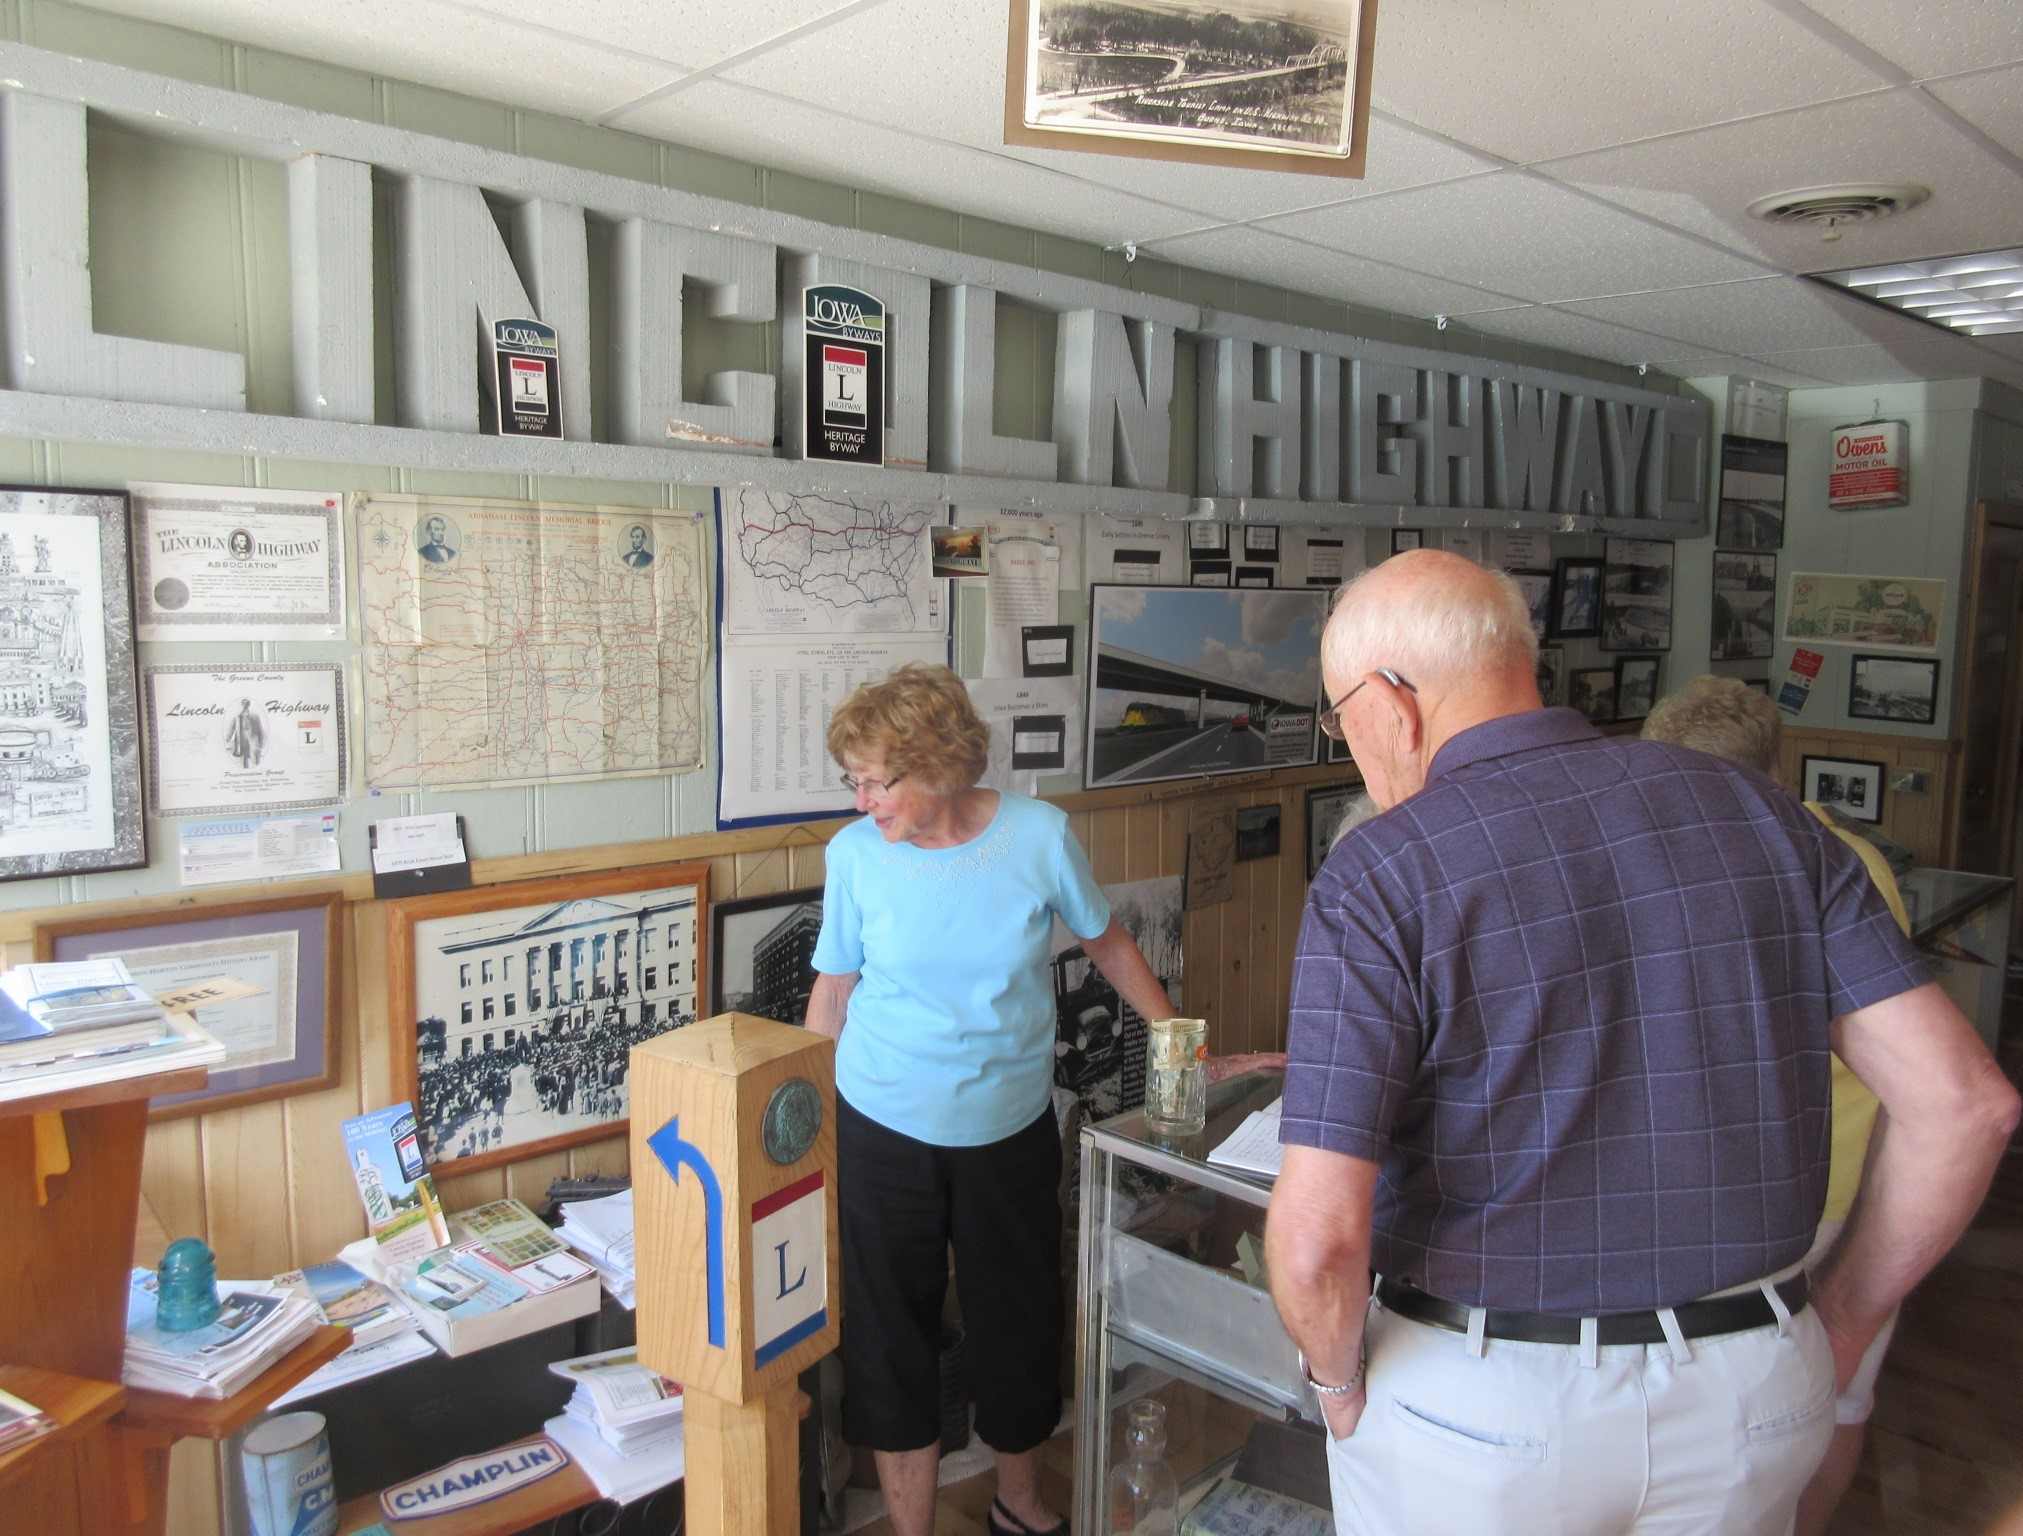 Joyce Ausberger welcomes visitors at Lincoln Highway Museum